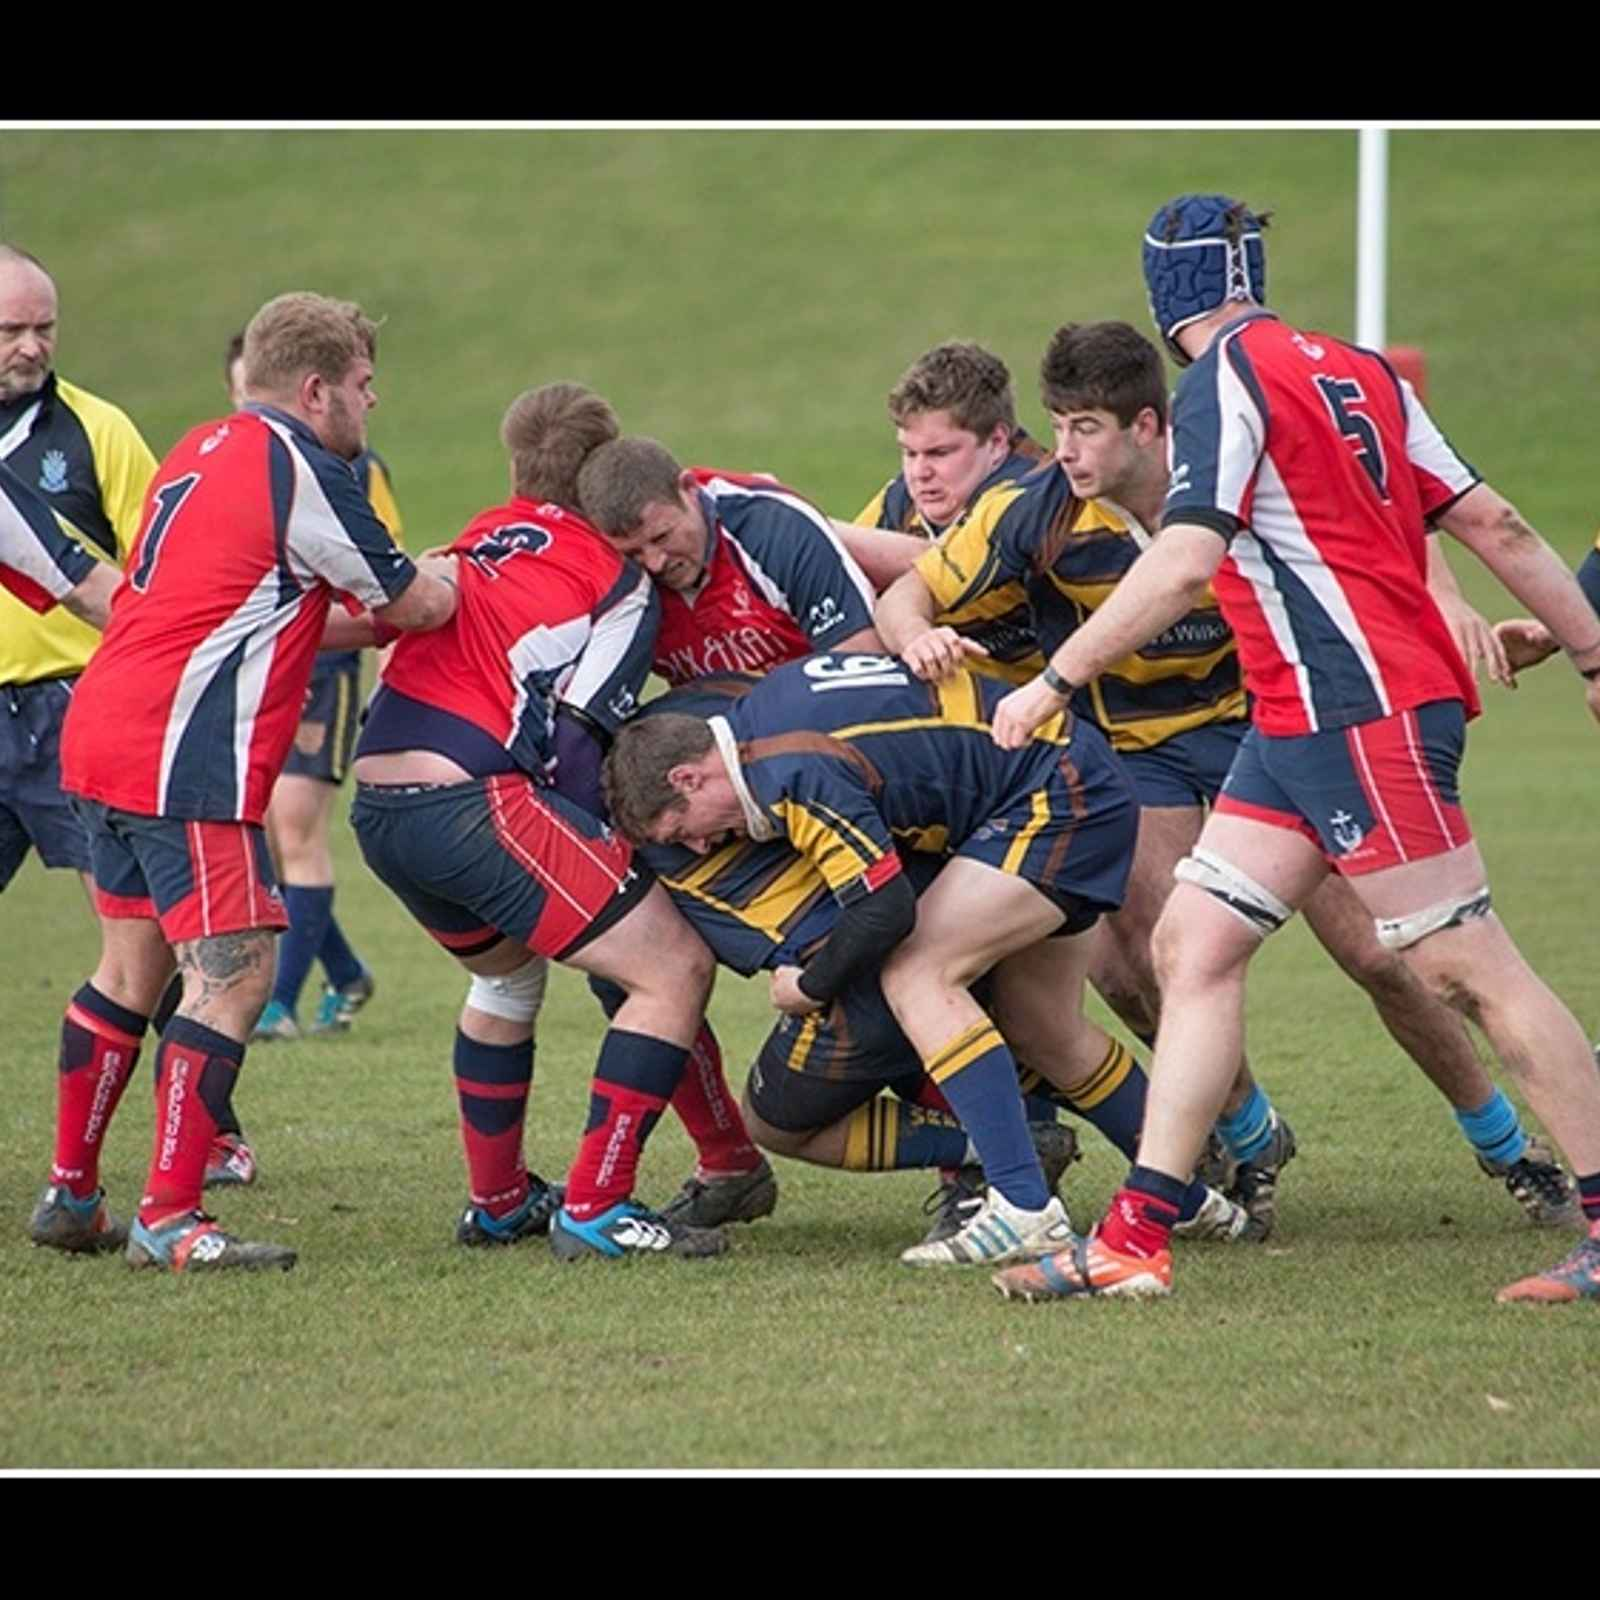 09-04-2016  Seaford v Worthing